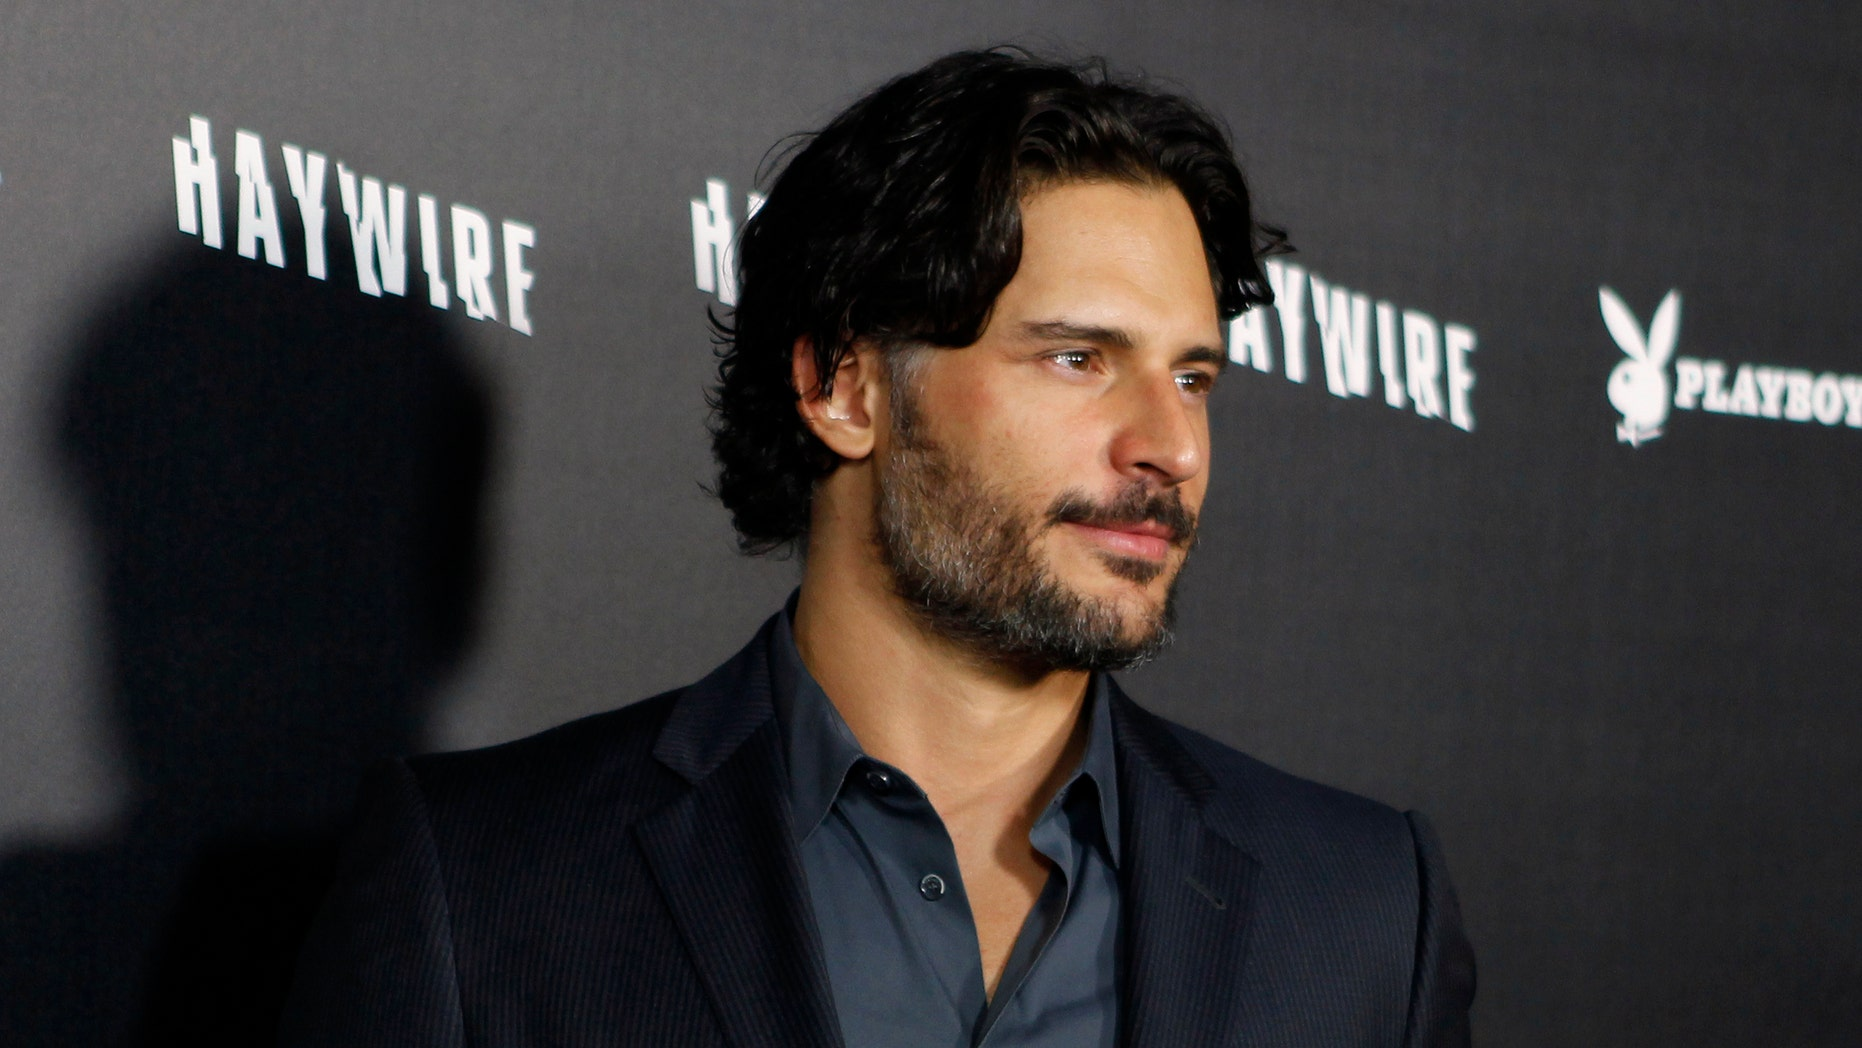 "Actor Joe Manganiello arrives at the premiere of director Steven Soderbergh's new film ""Haywire"" in Hollywood, California January 5, 2012. Manganiello stars in Soderbergh's upcoming film about male strippers titled ""Magic Mike"". REUTERS/Fred Prouser  (UNITED STATES - Tags: ENTERTAINMENT HEADSHOT) - RTR2VXY4"